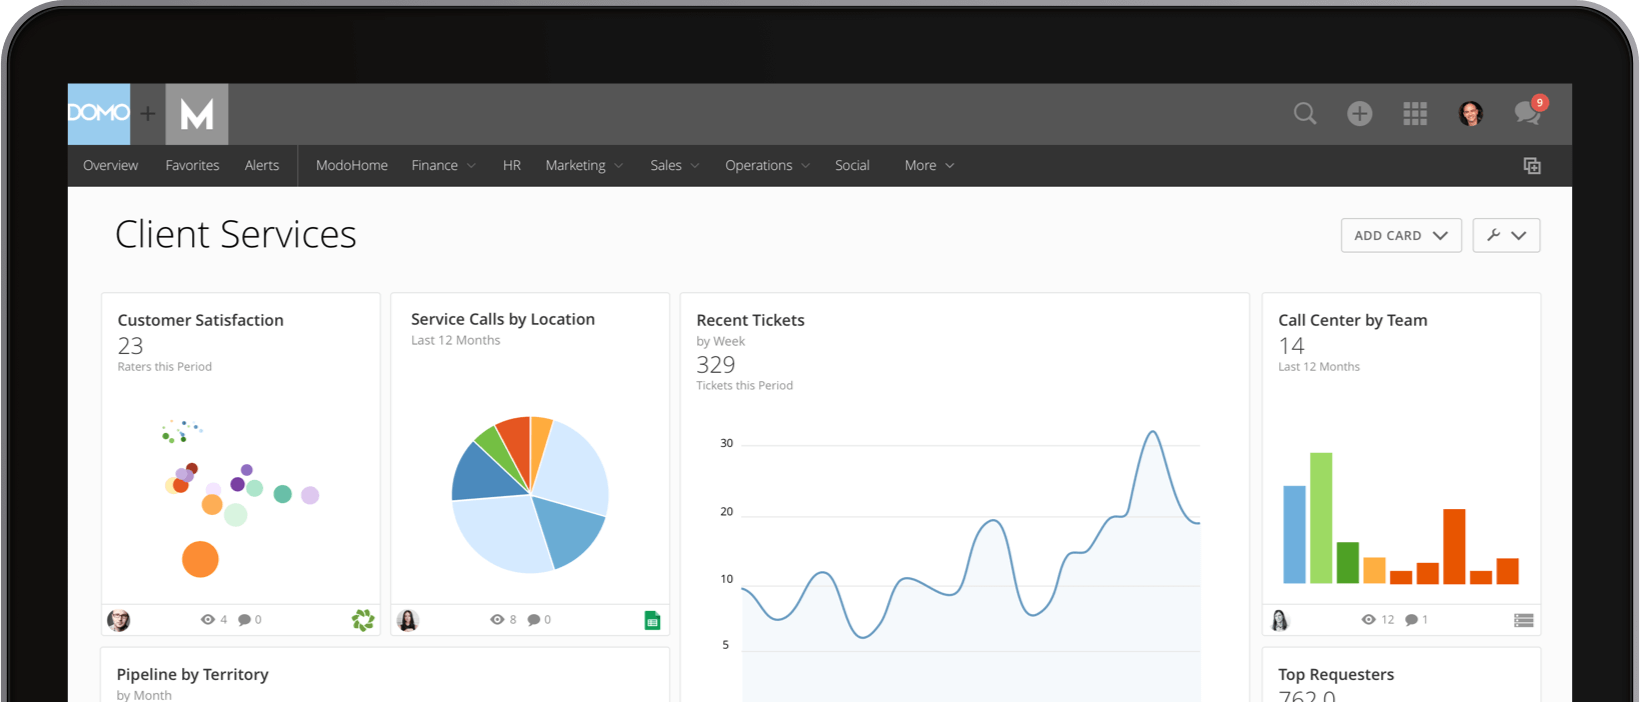 Client Services Executive Dashboard Reporting Domo Domo - Customer dashboard template